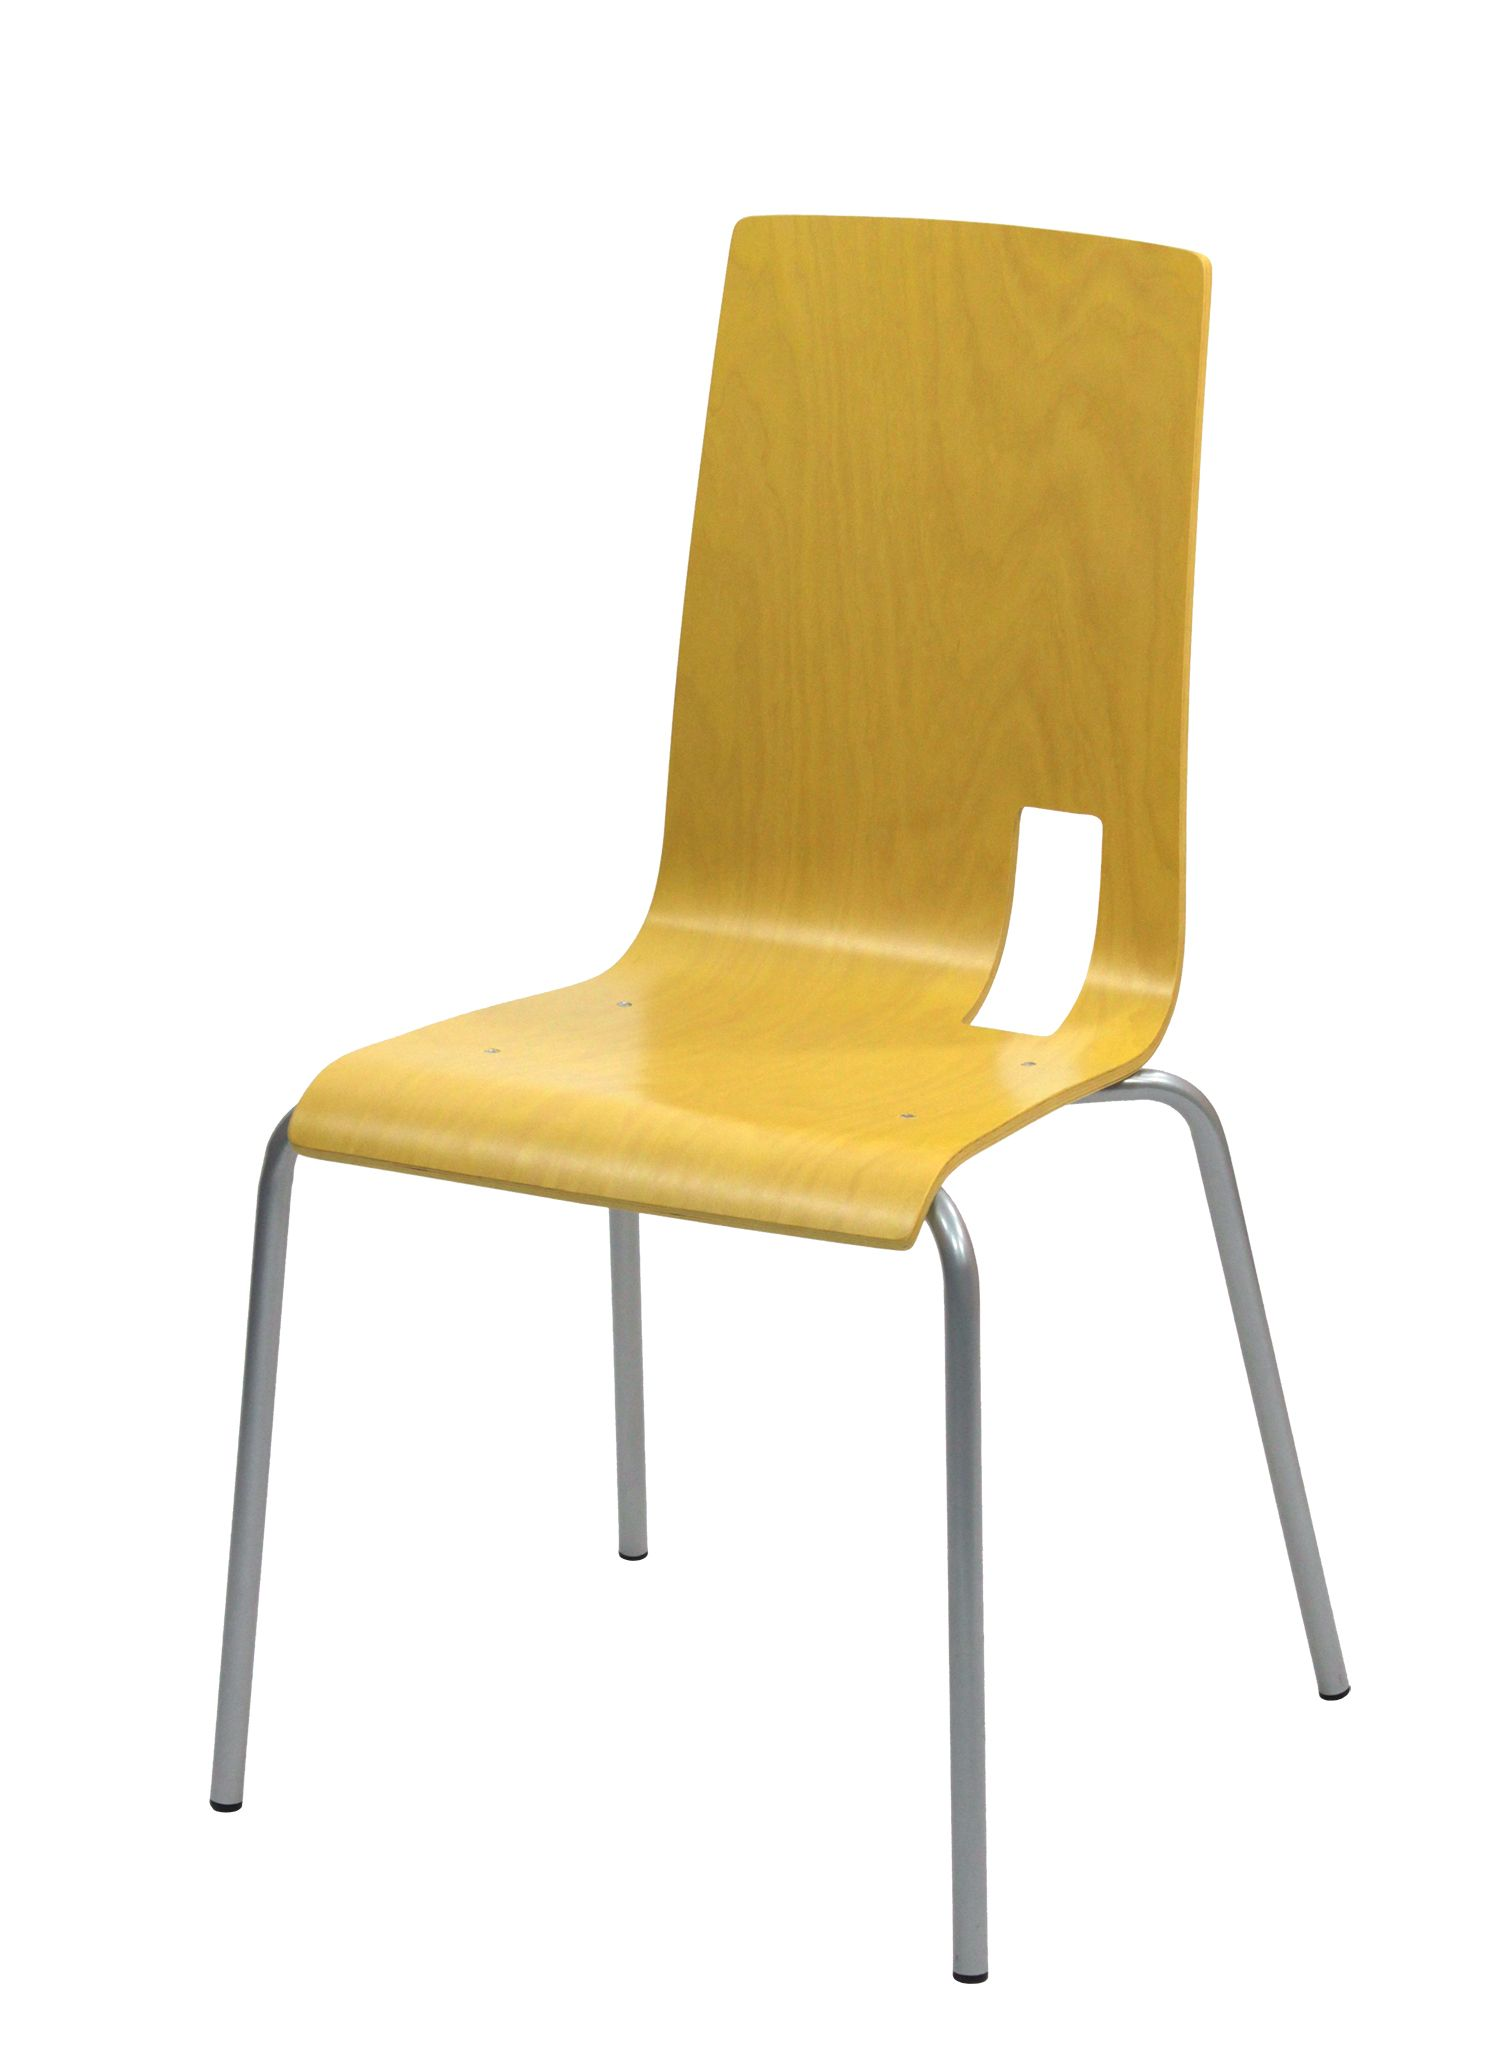 CHAISE SODA IXIA EMPILABLE COQUE JAUNE #chaise #chair